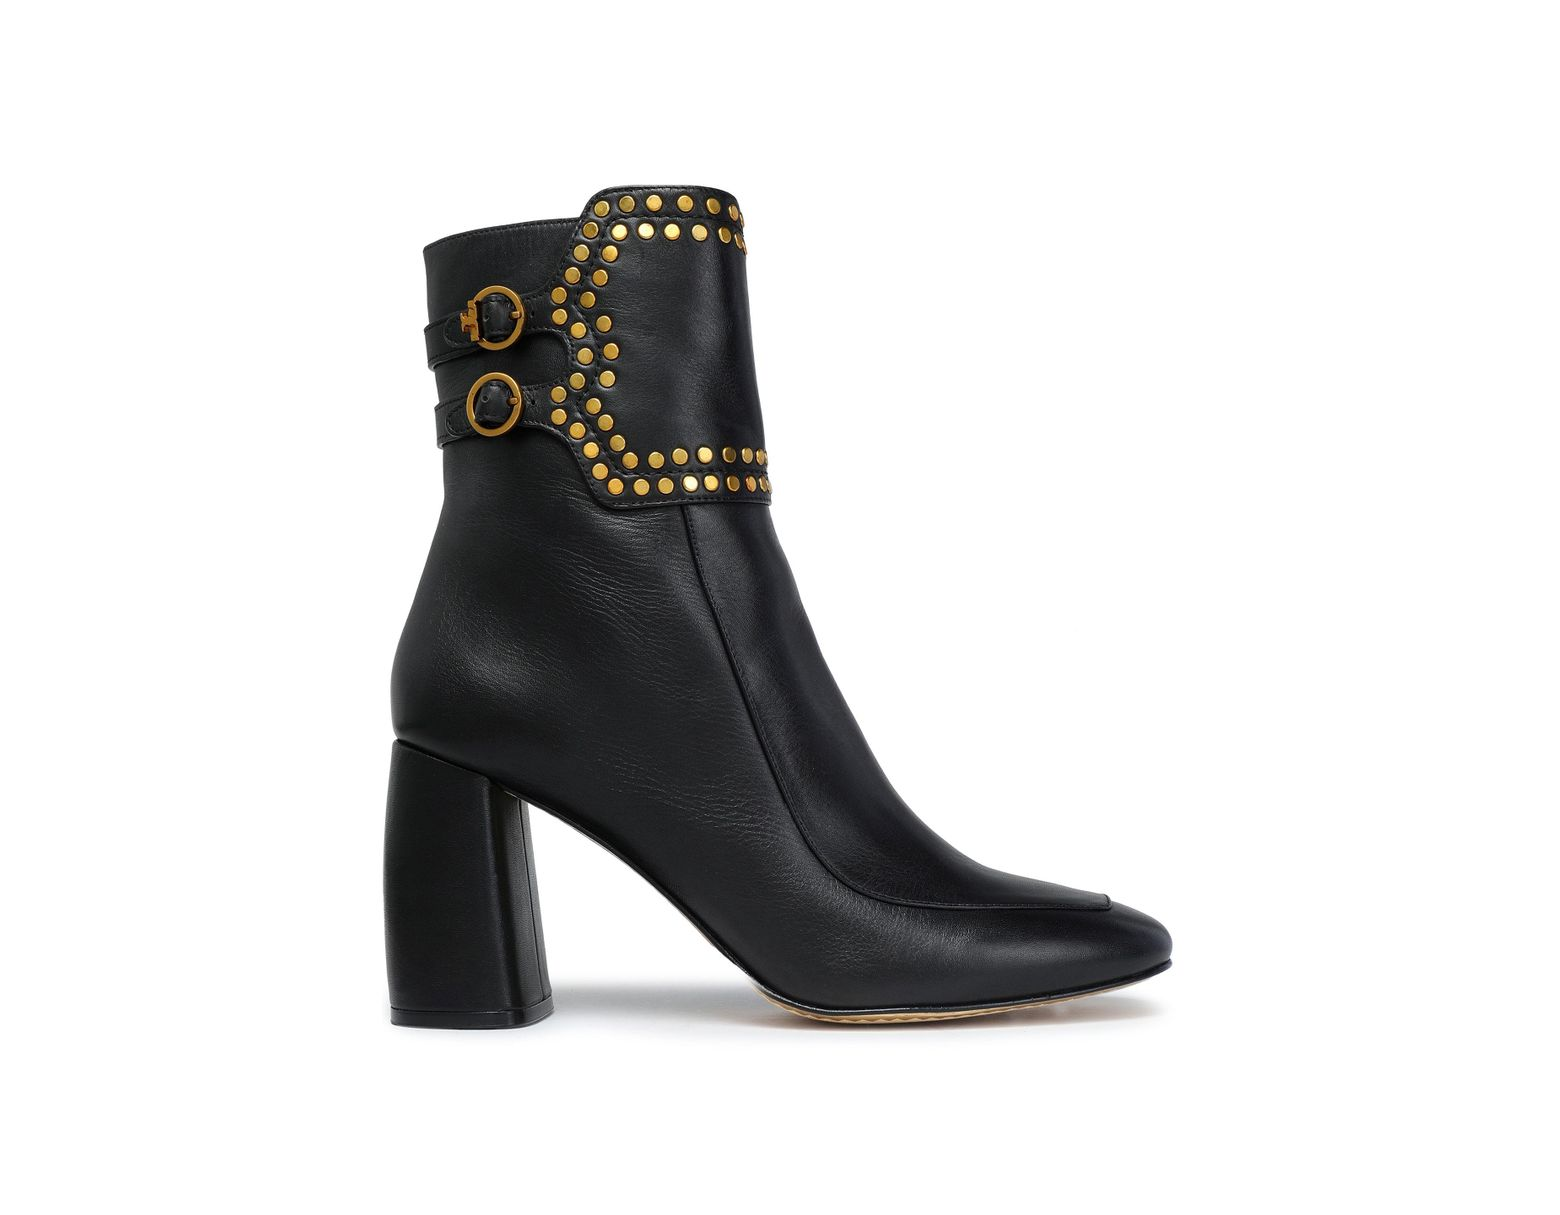 4e9da9603 Tory Burch Studded Leather Ankle Boots Black in Black - Lyst